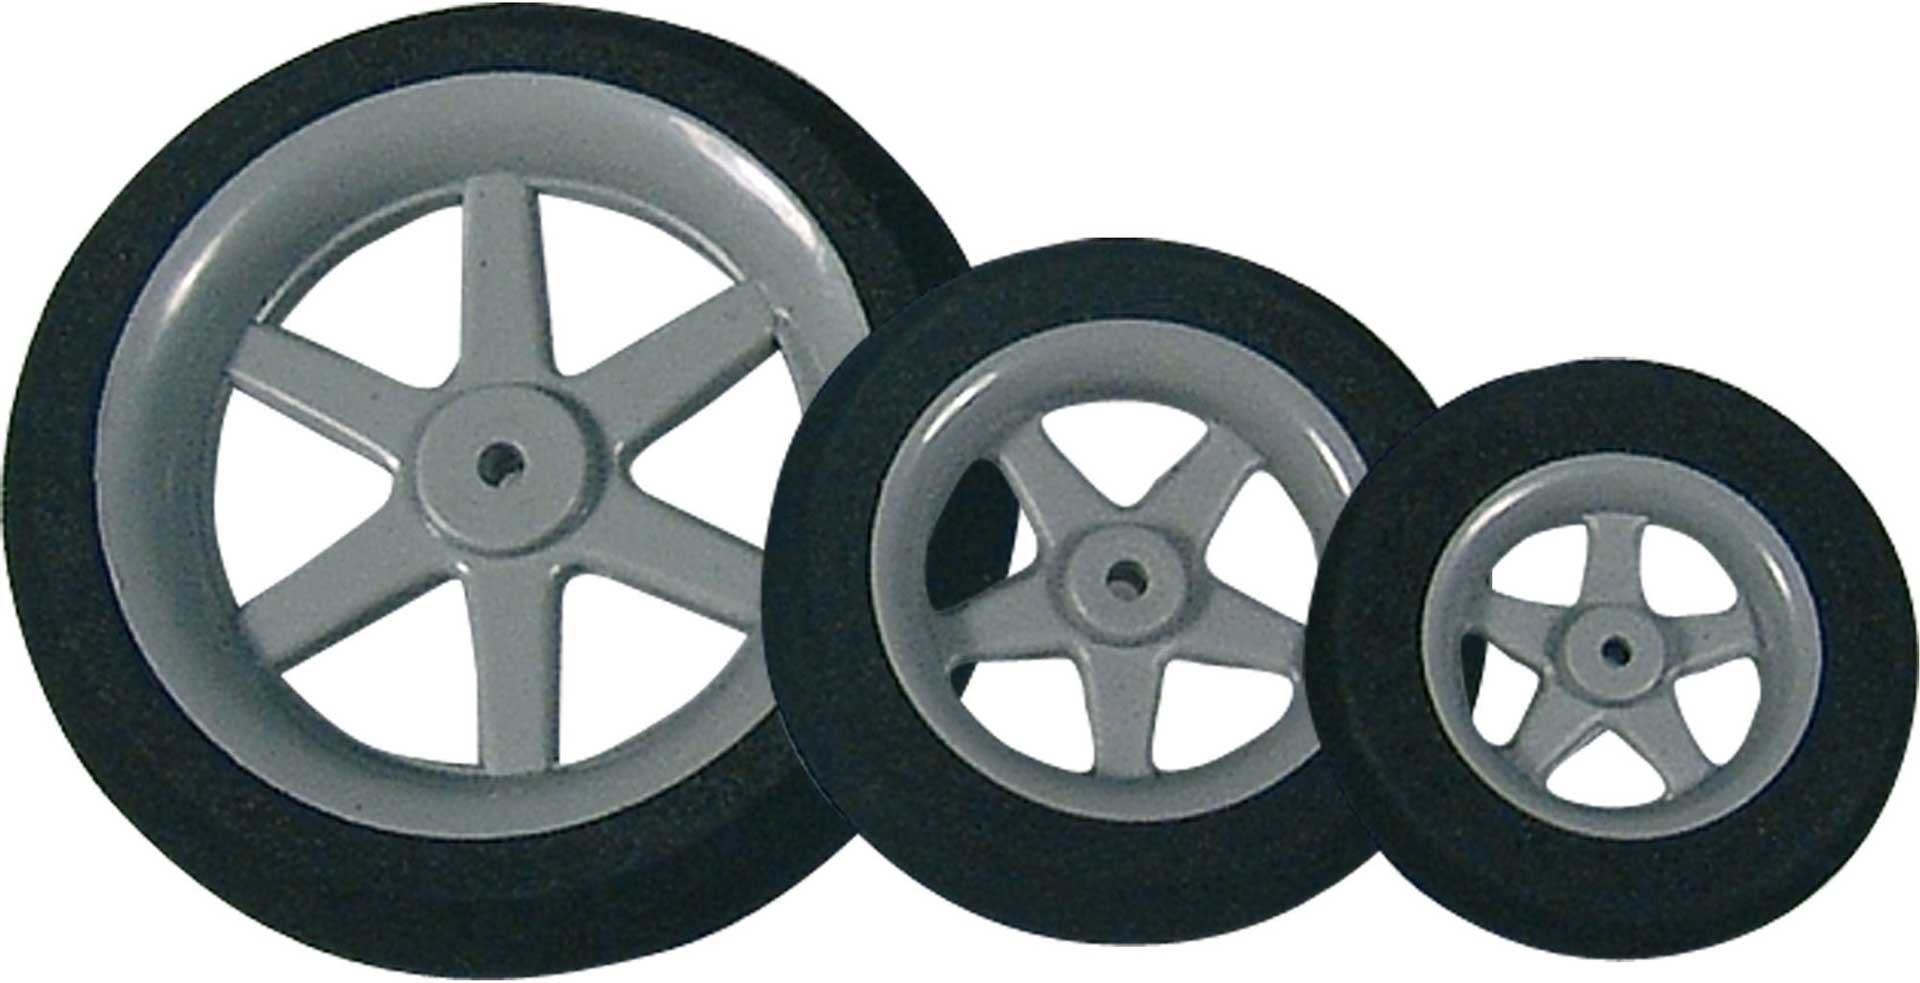 PLANET-HOBBY WHEELS STAR WHEEL 50MM 2 PCS.